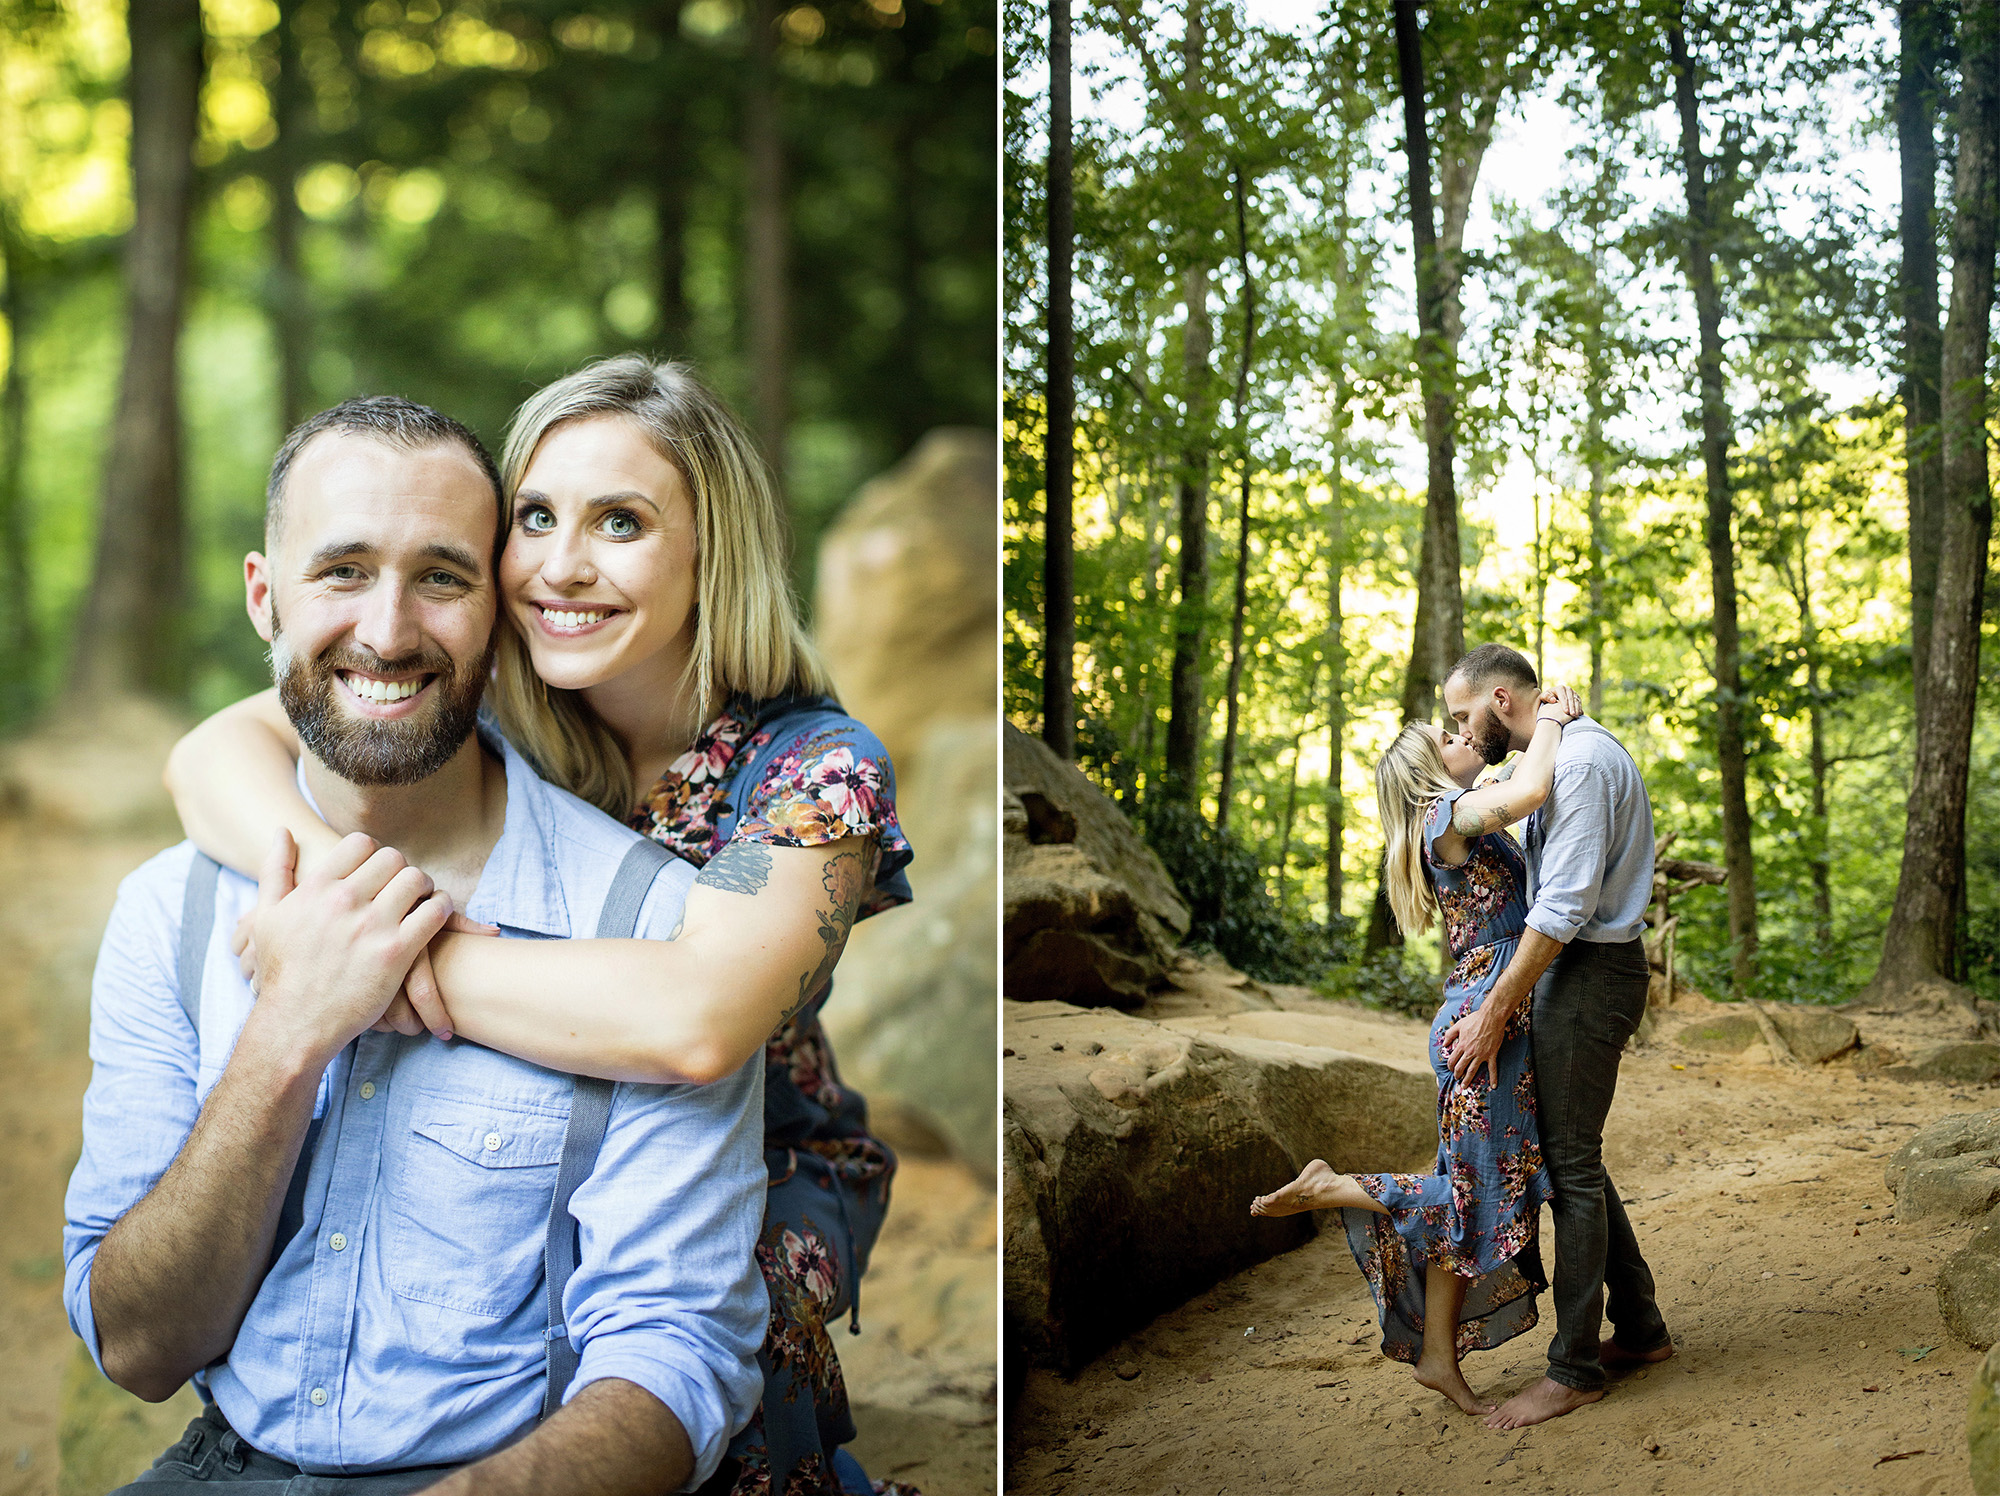 Seriously_Sabrina_Photography_Red_River_Gorge_Engagement_Session_Monika_Steven_28.jpg